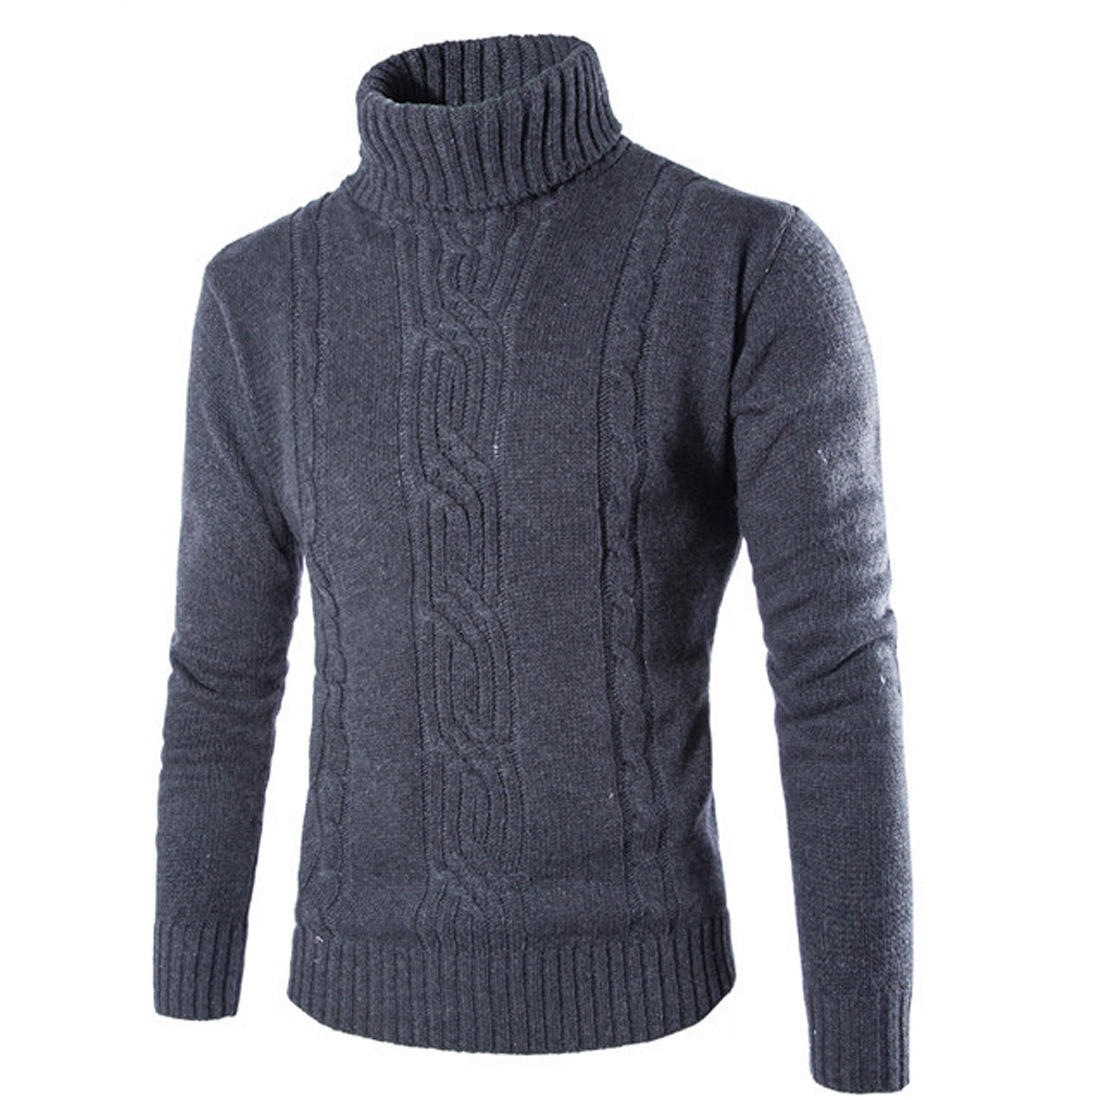 MEN'S Sweater Foreign Trade Fashion Jacquard Sweater Solid Color England Casual Pullover Sweater